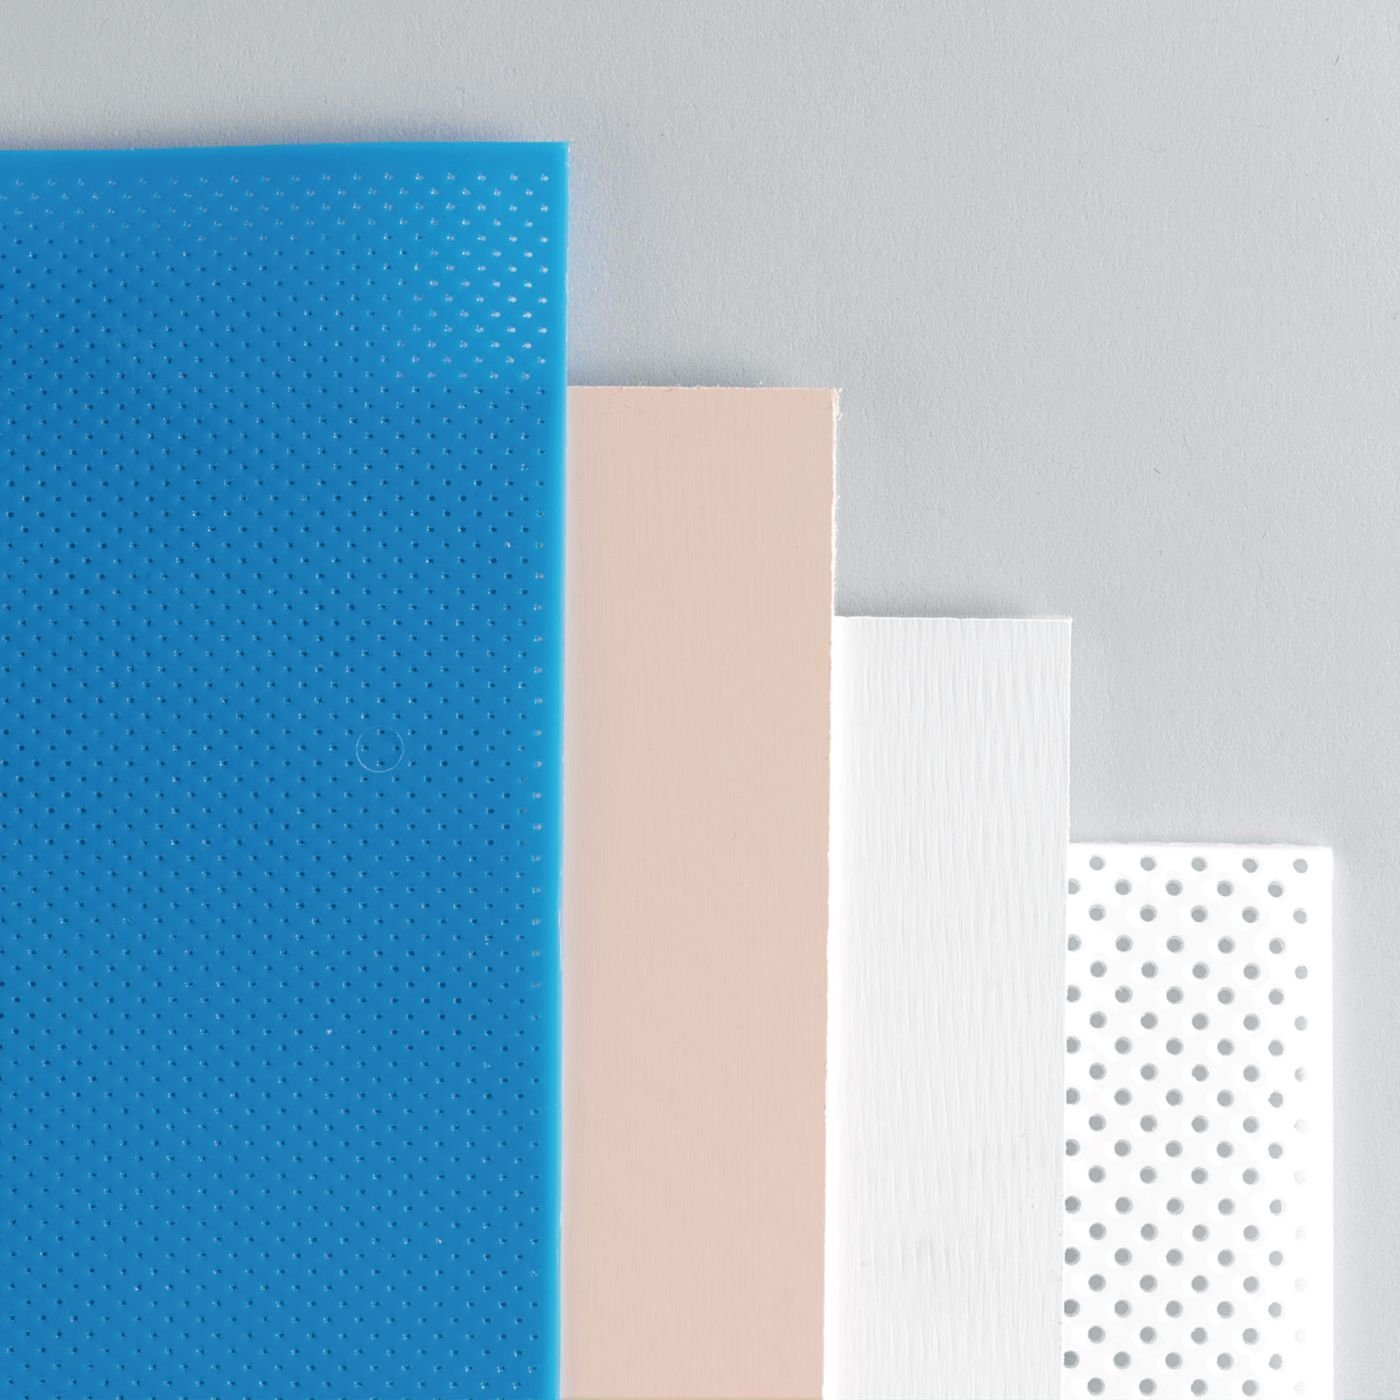 Rolyan Splinting Material Sheets, Small Clinic Pack A, 4 Sheets, 1 Each Aquaplast Pro-Drape-T Optiperf Perforated, Polyform Solid, Polyflex II Solid, Watercolors Ultraperf